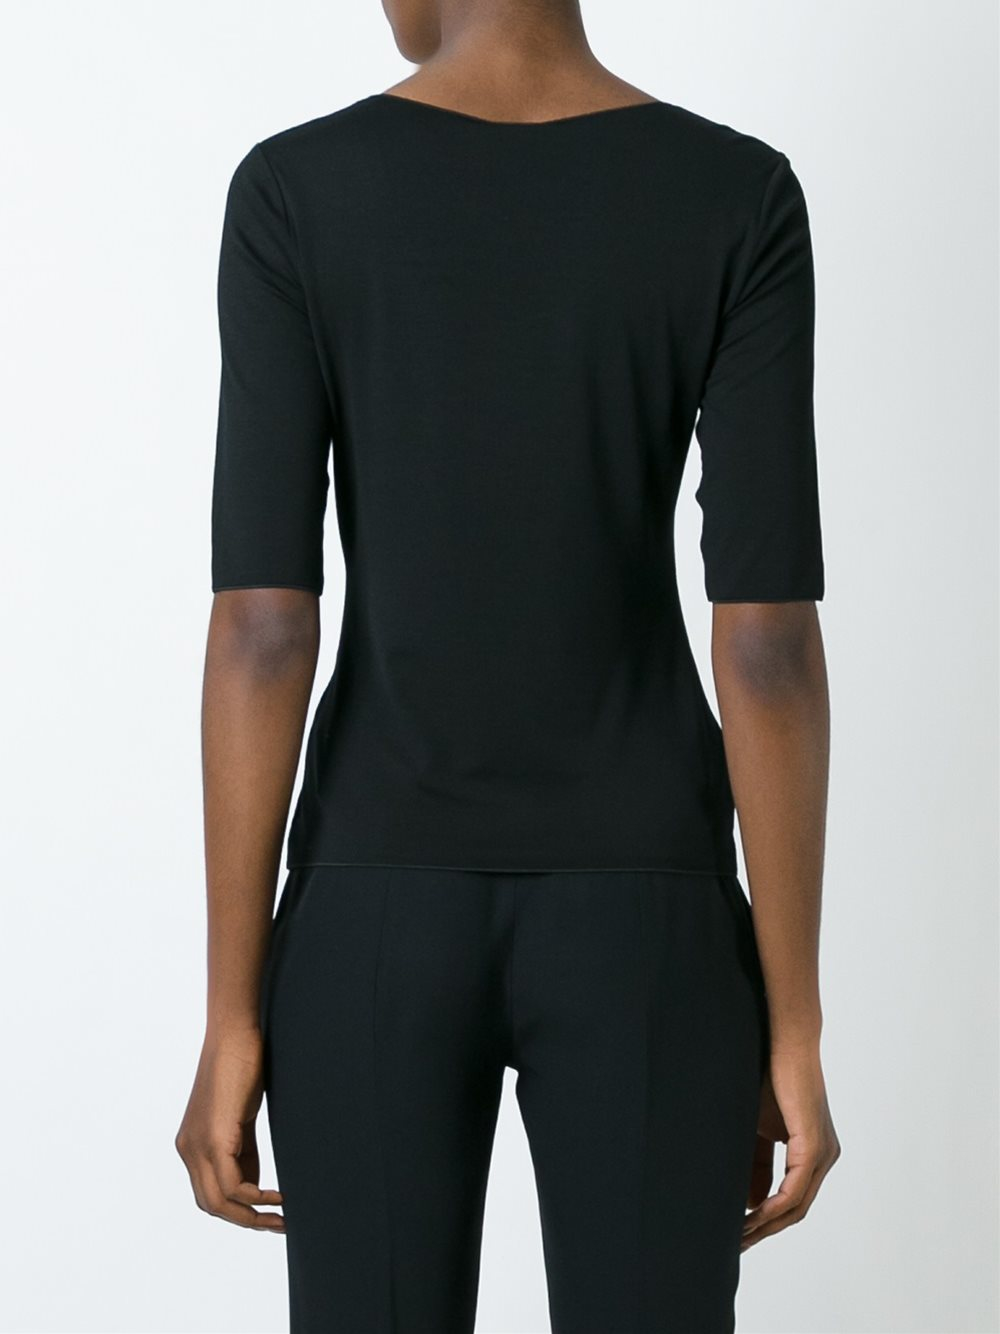 Lyst armani scoop neck t shirt in black for Scoop neck t shirt